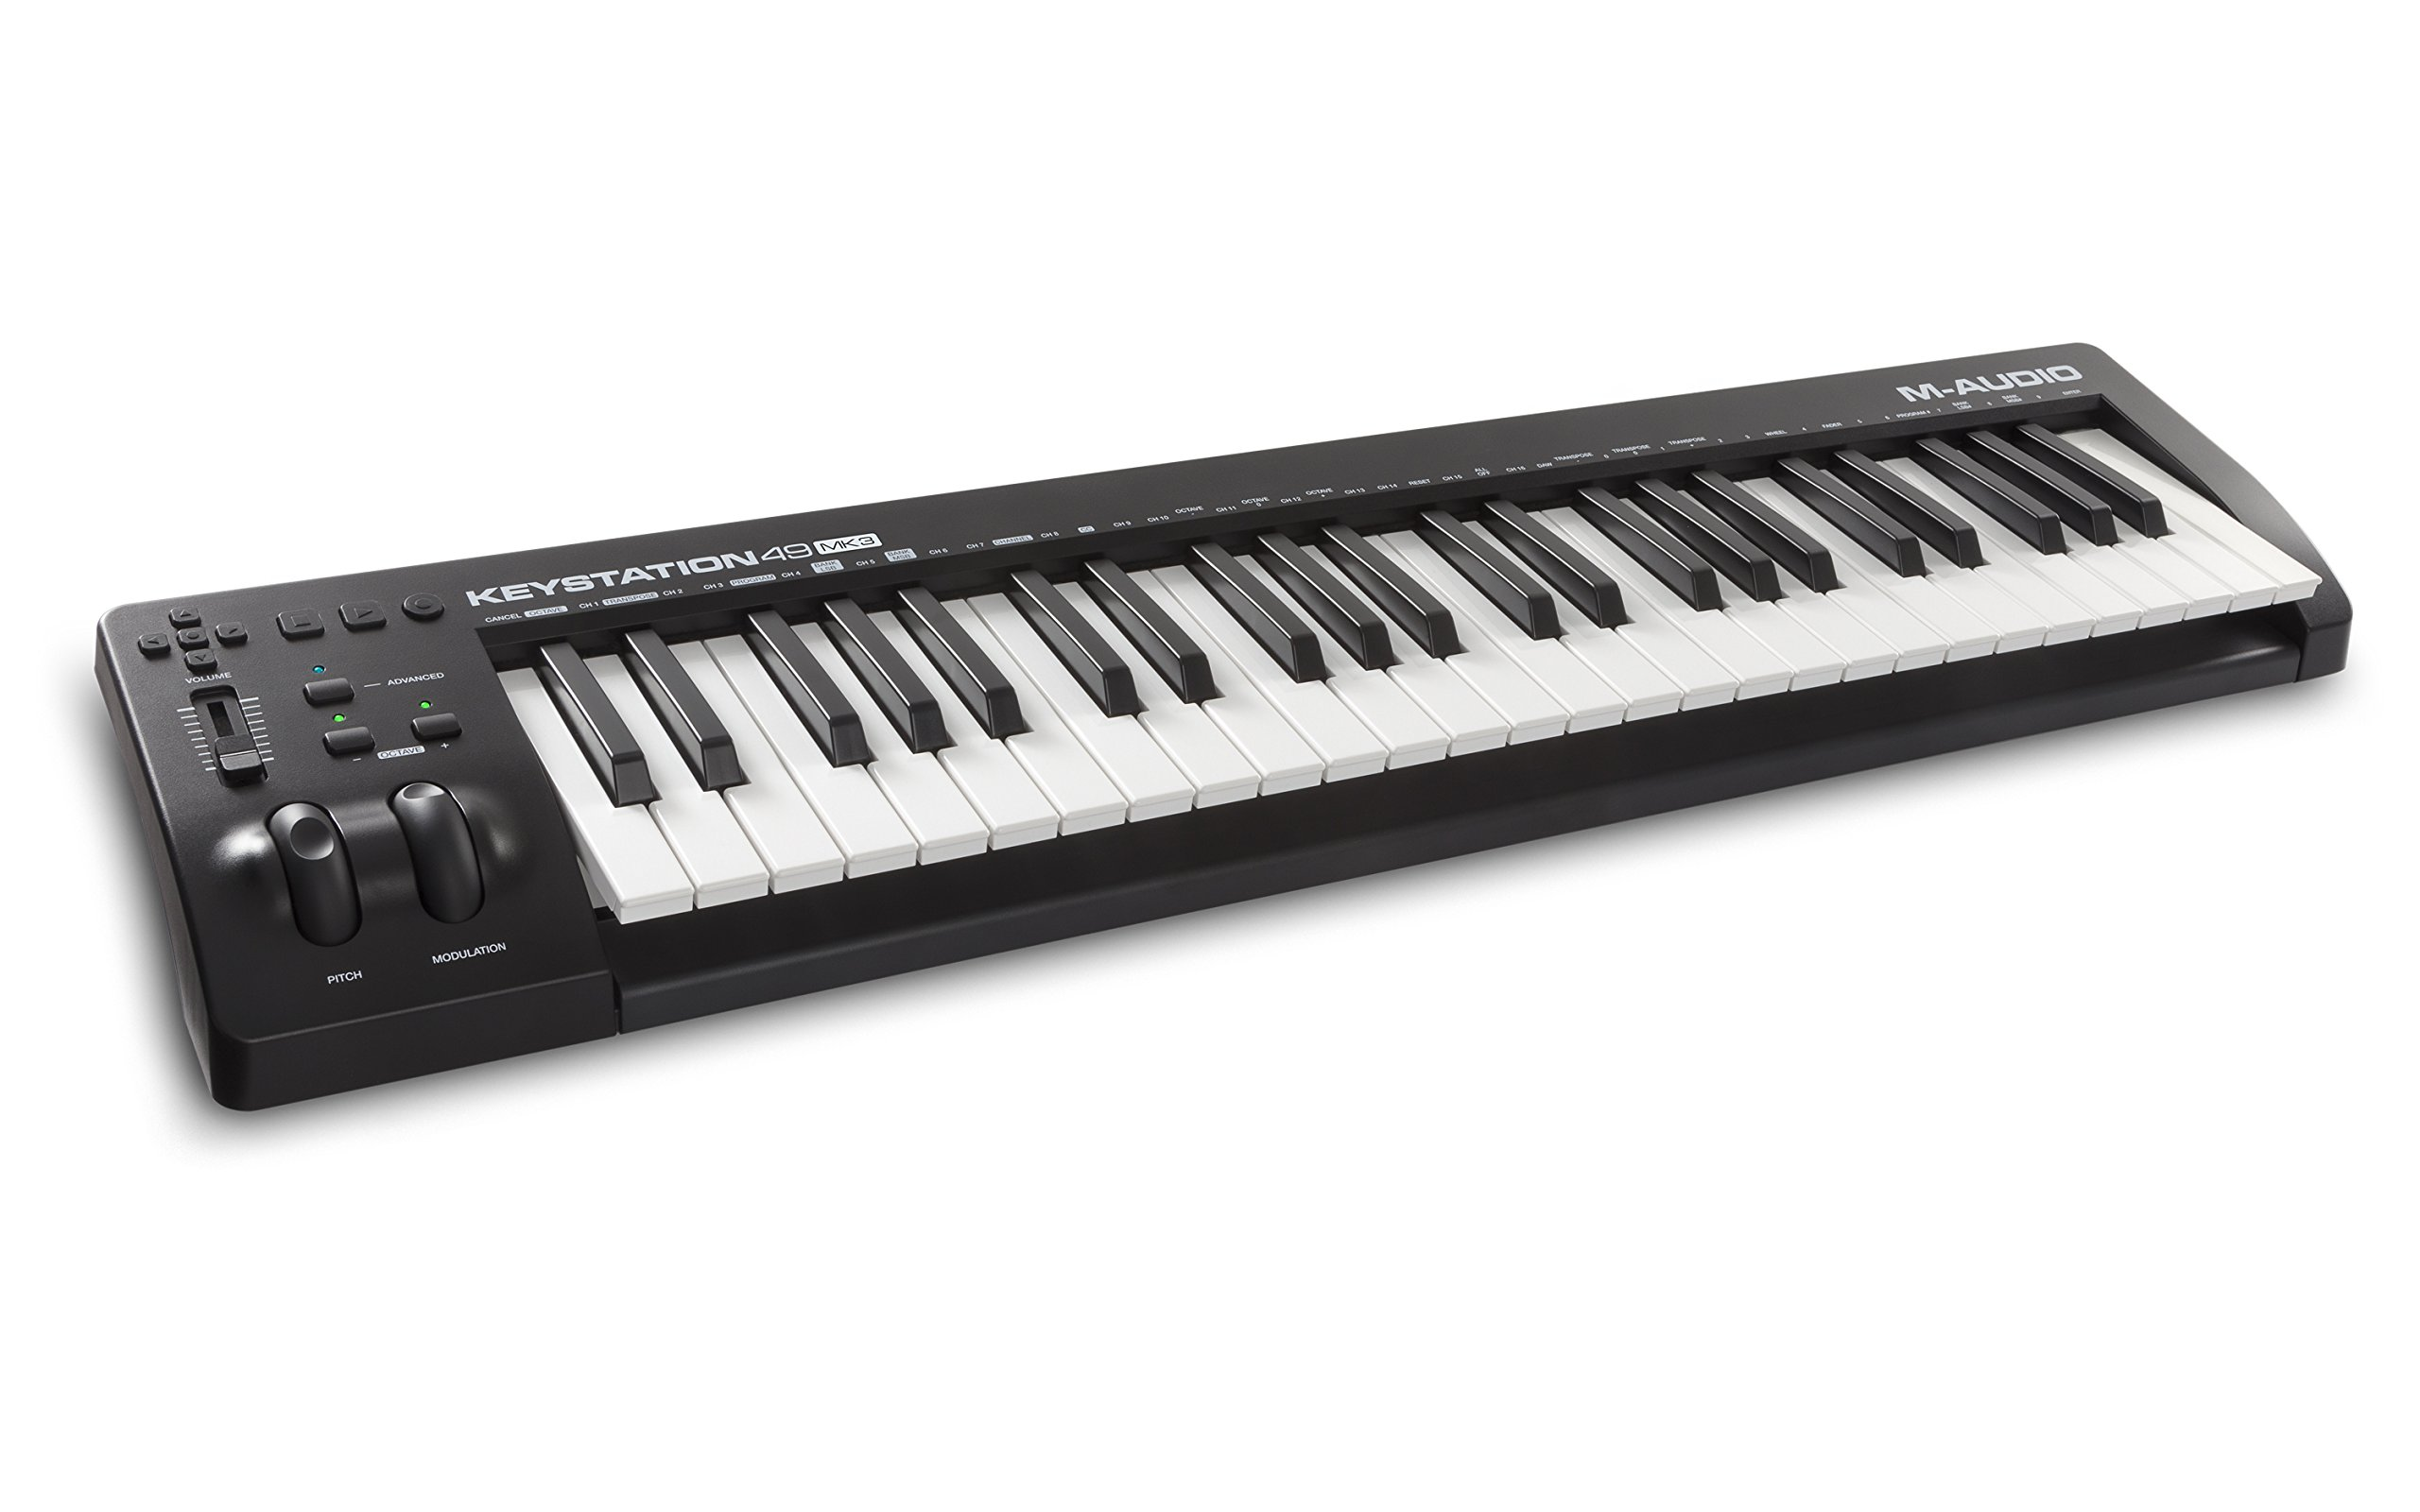 M-Audio Keystation 49 MK3 | Compact Semi-Weighted 49 Key MIDI Keyboard Controller with Assignable Controls, Pitch / Modulation Wheels and Software Production Suite included - USB-Powered by M-Audio